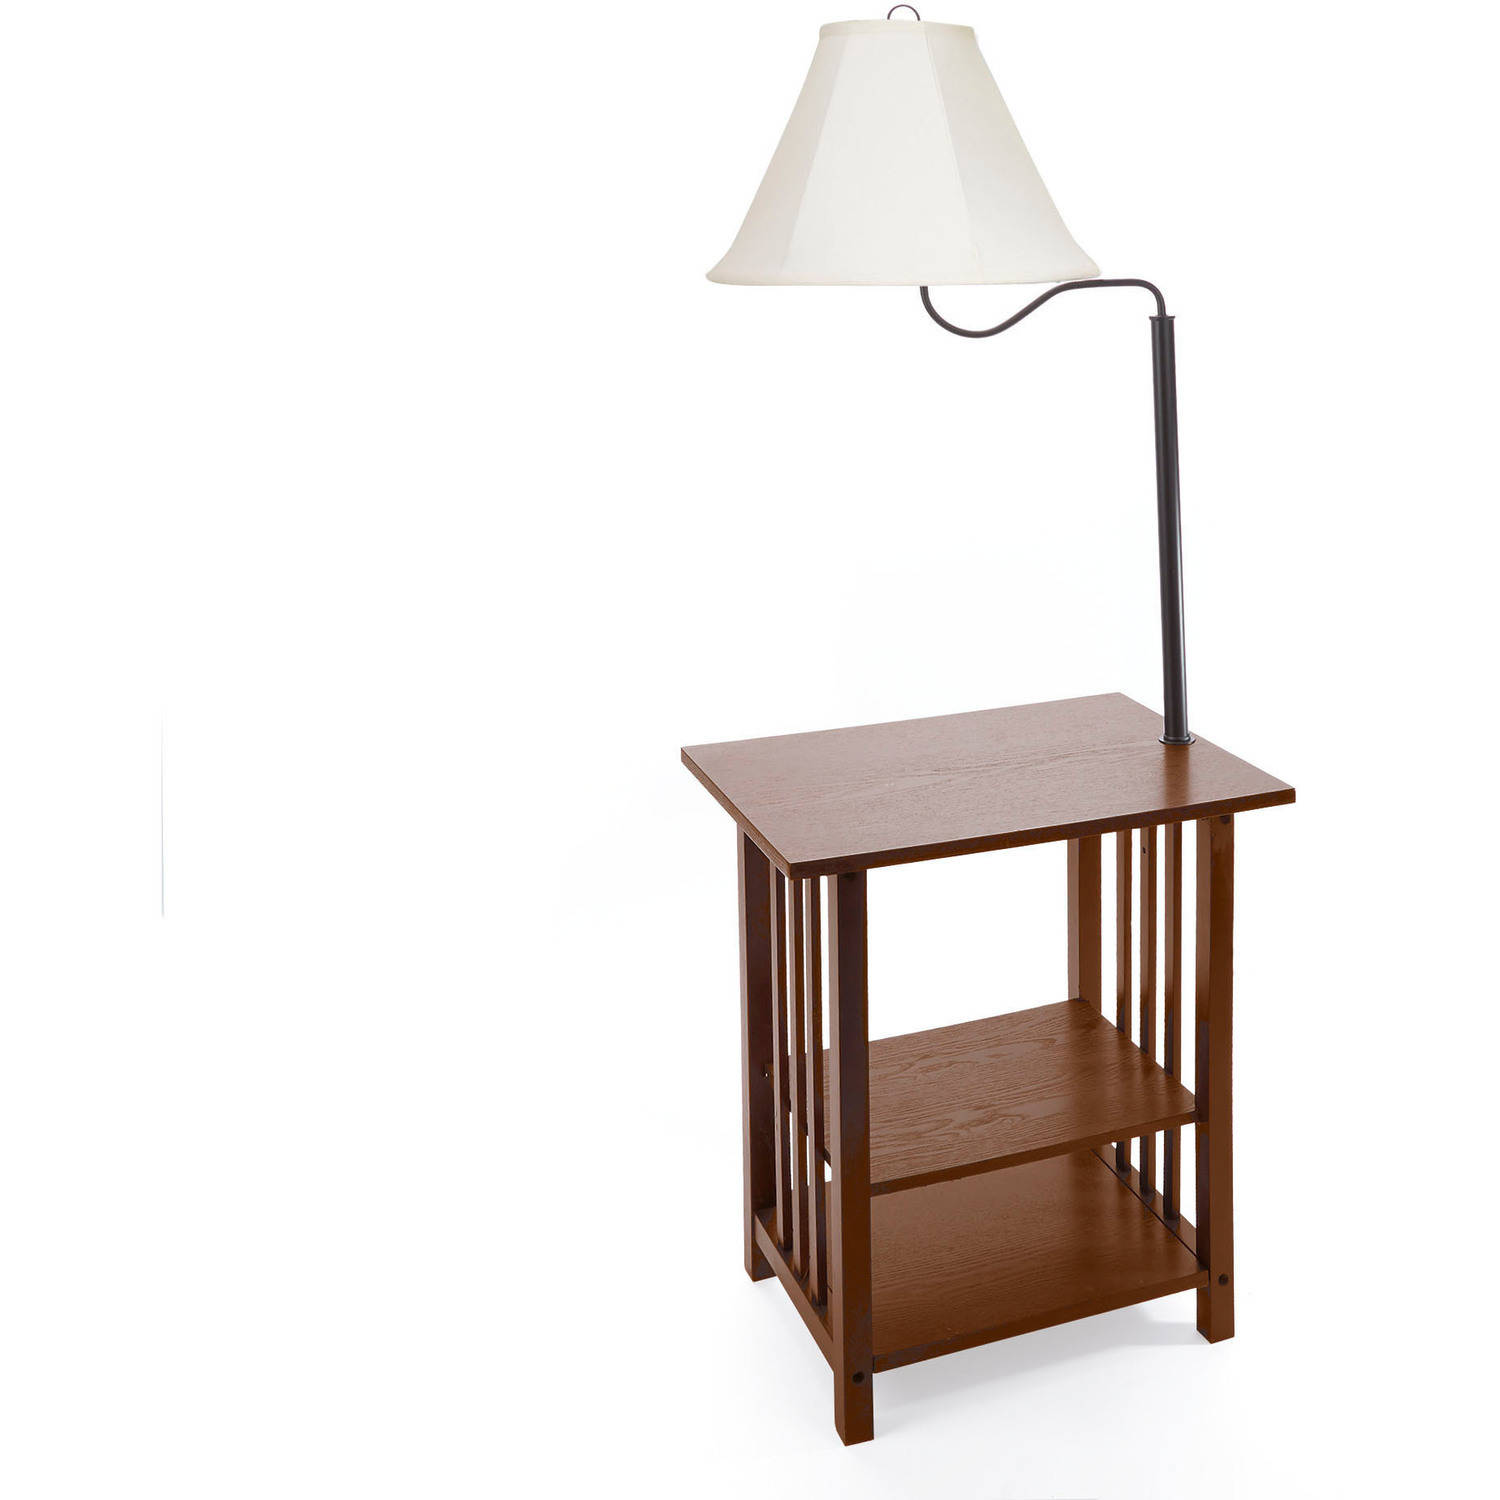 chair side table with lamp design decoration ivory end combinations combo log and benches glass top patio chairs dark wood bar furniture thomasville brown leather couch brass pipe